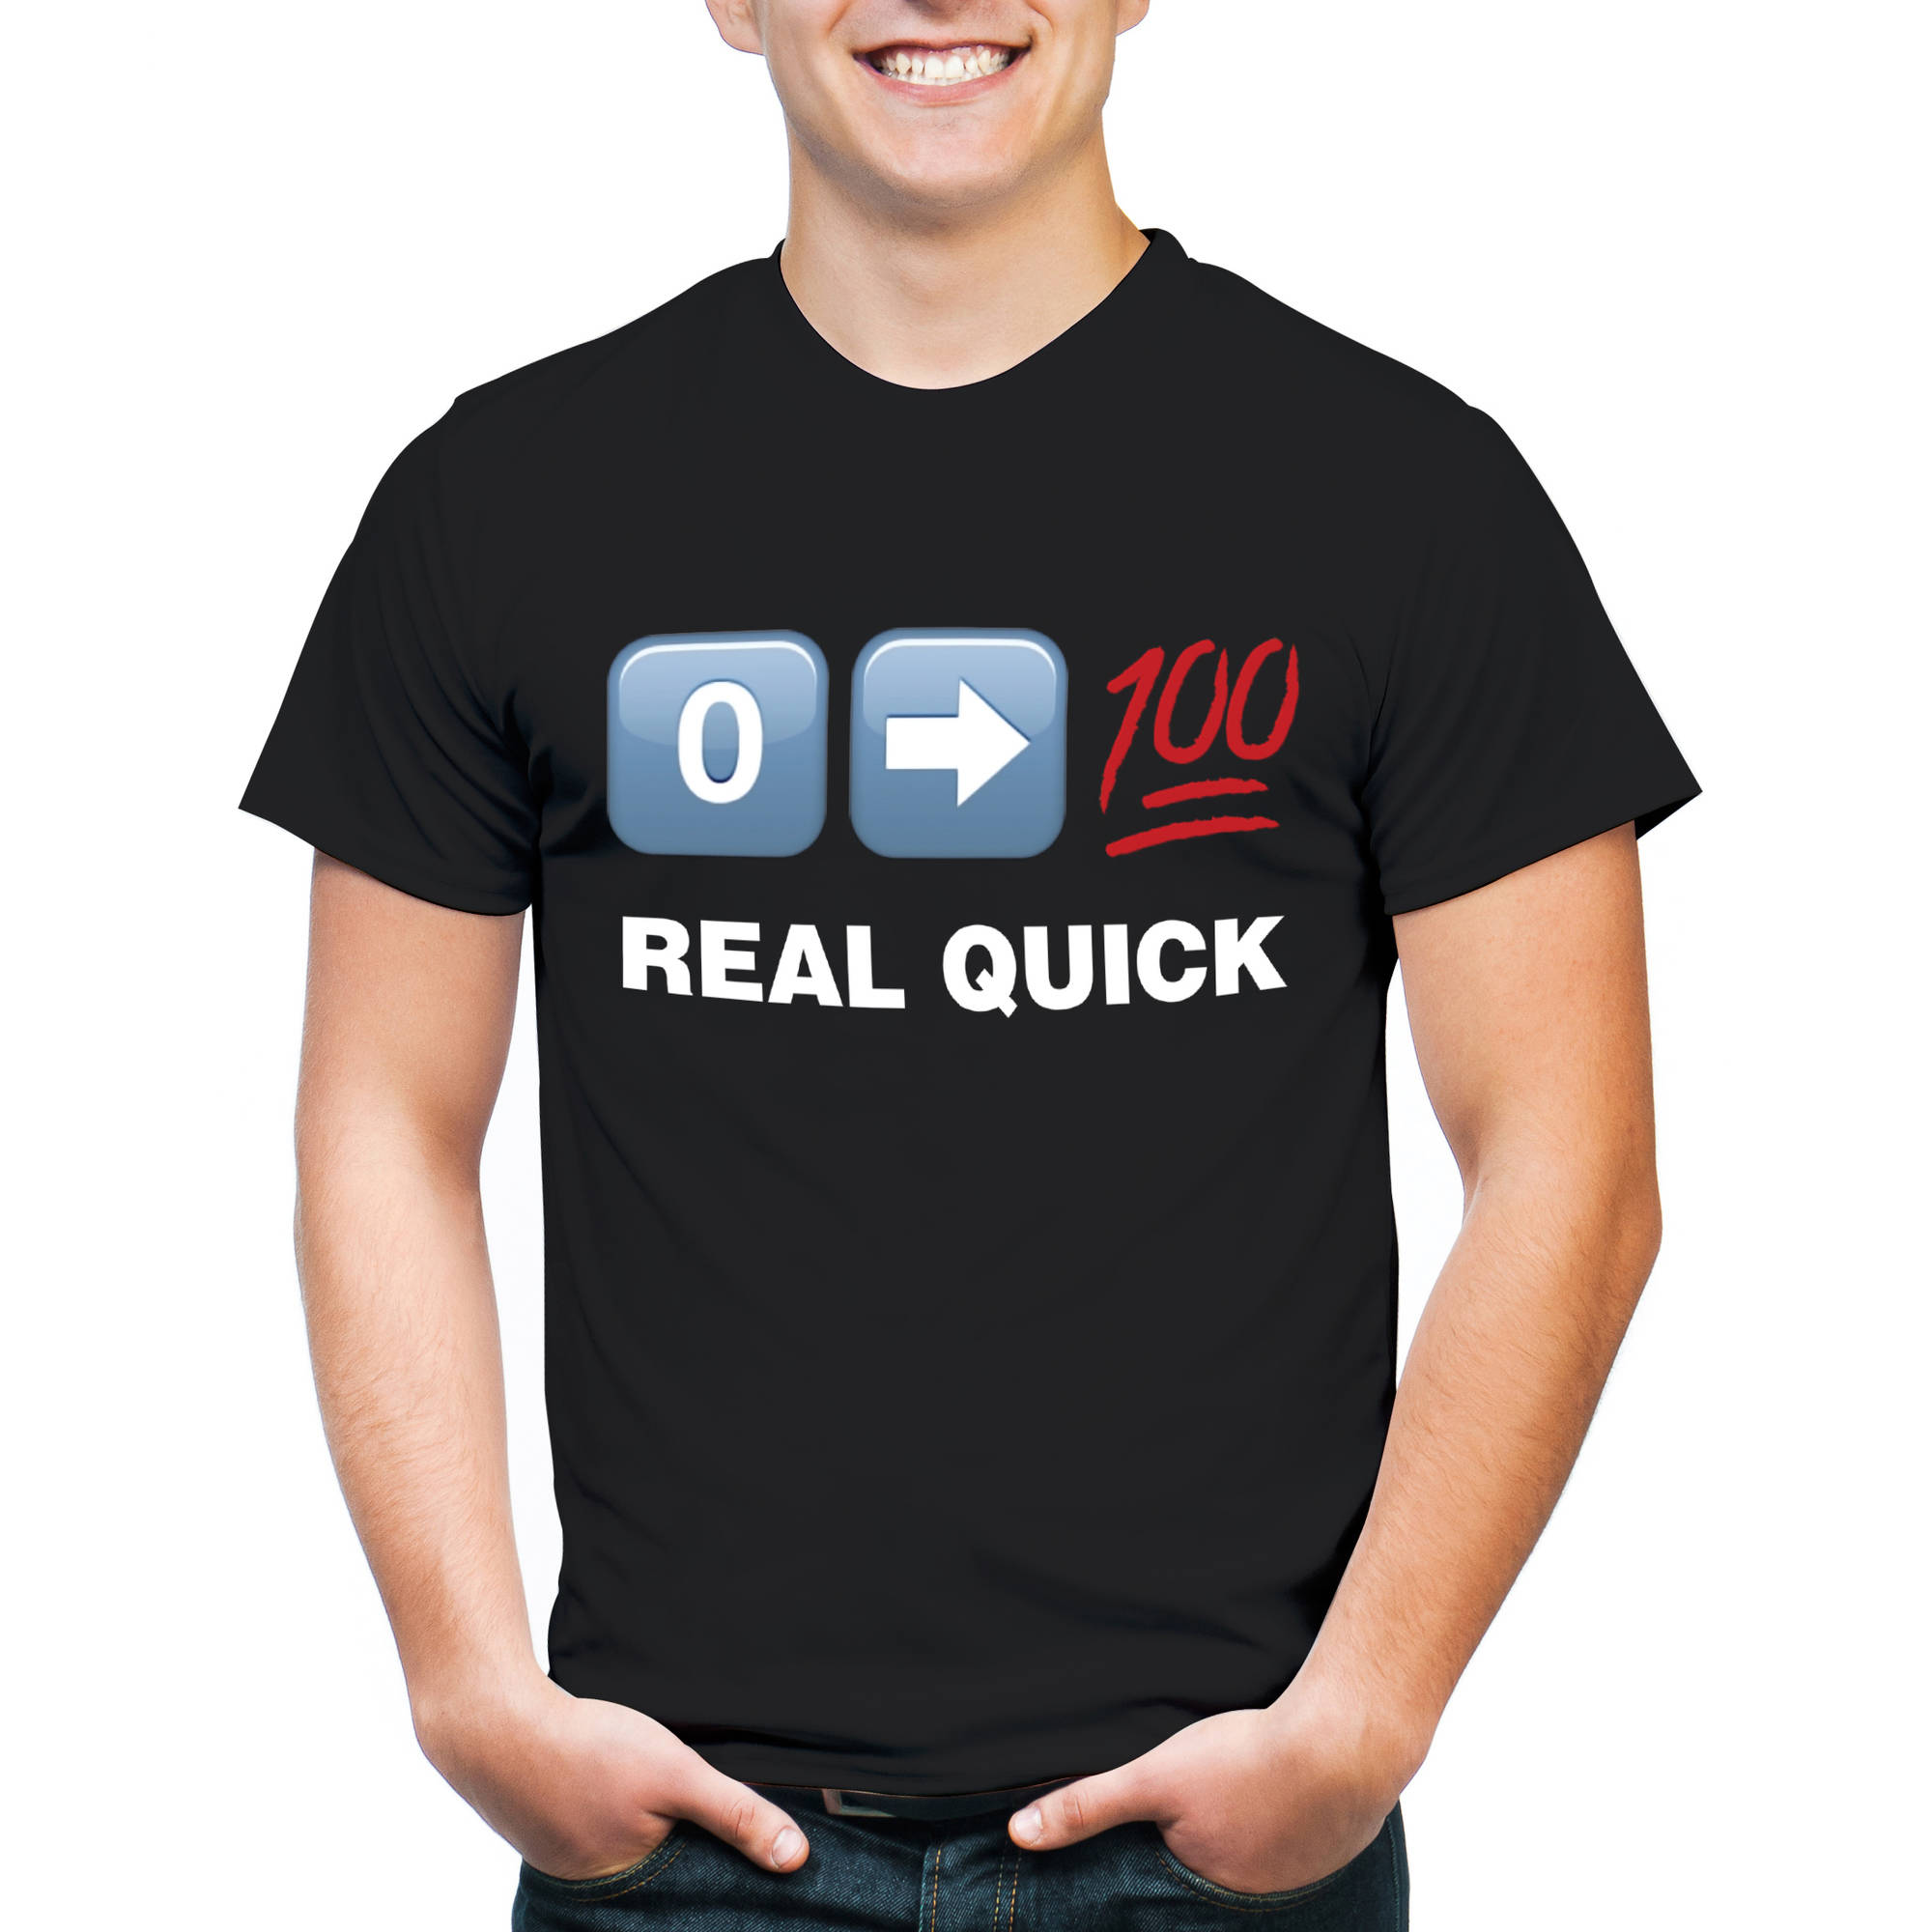 100 Real Quick Men's Graphic Tee